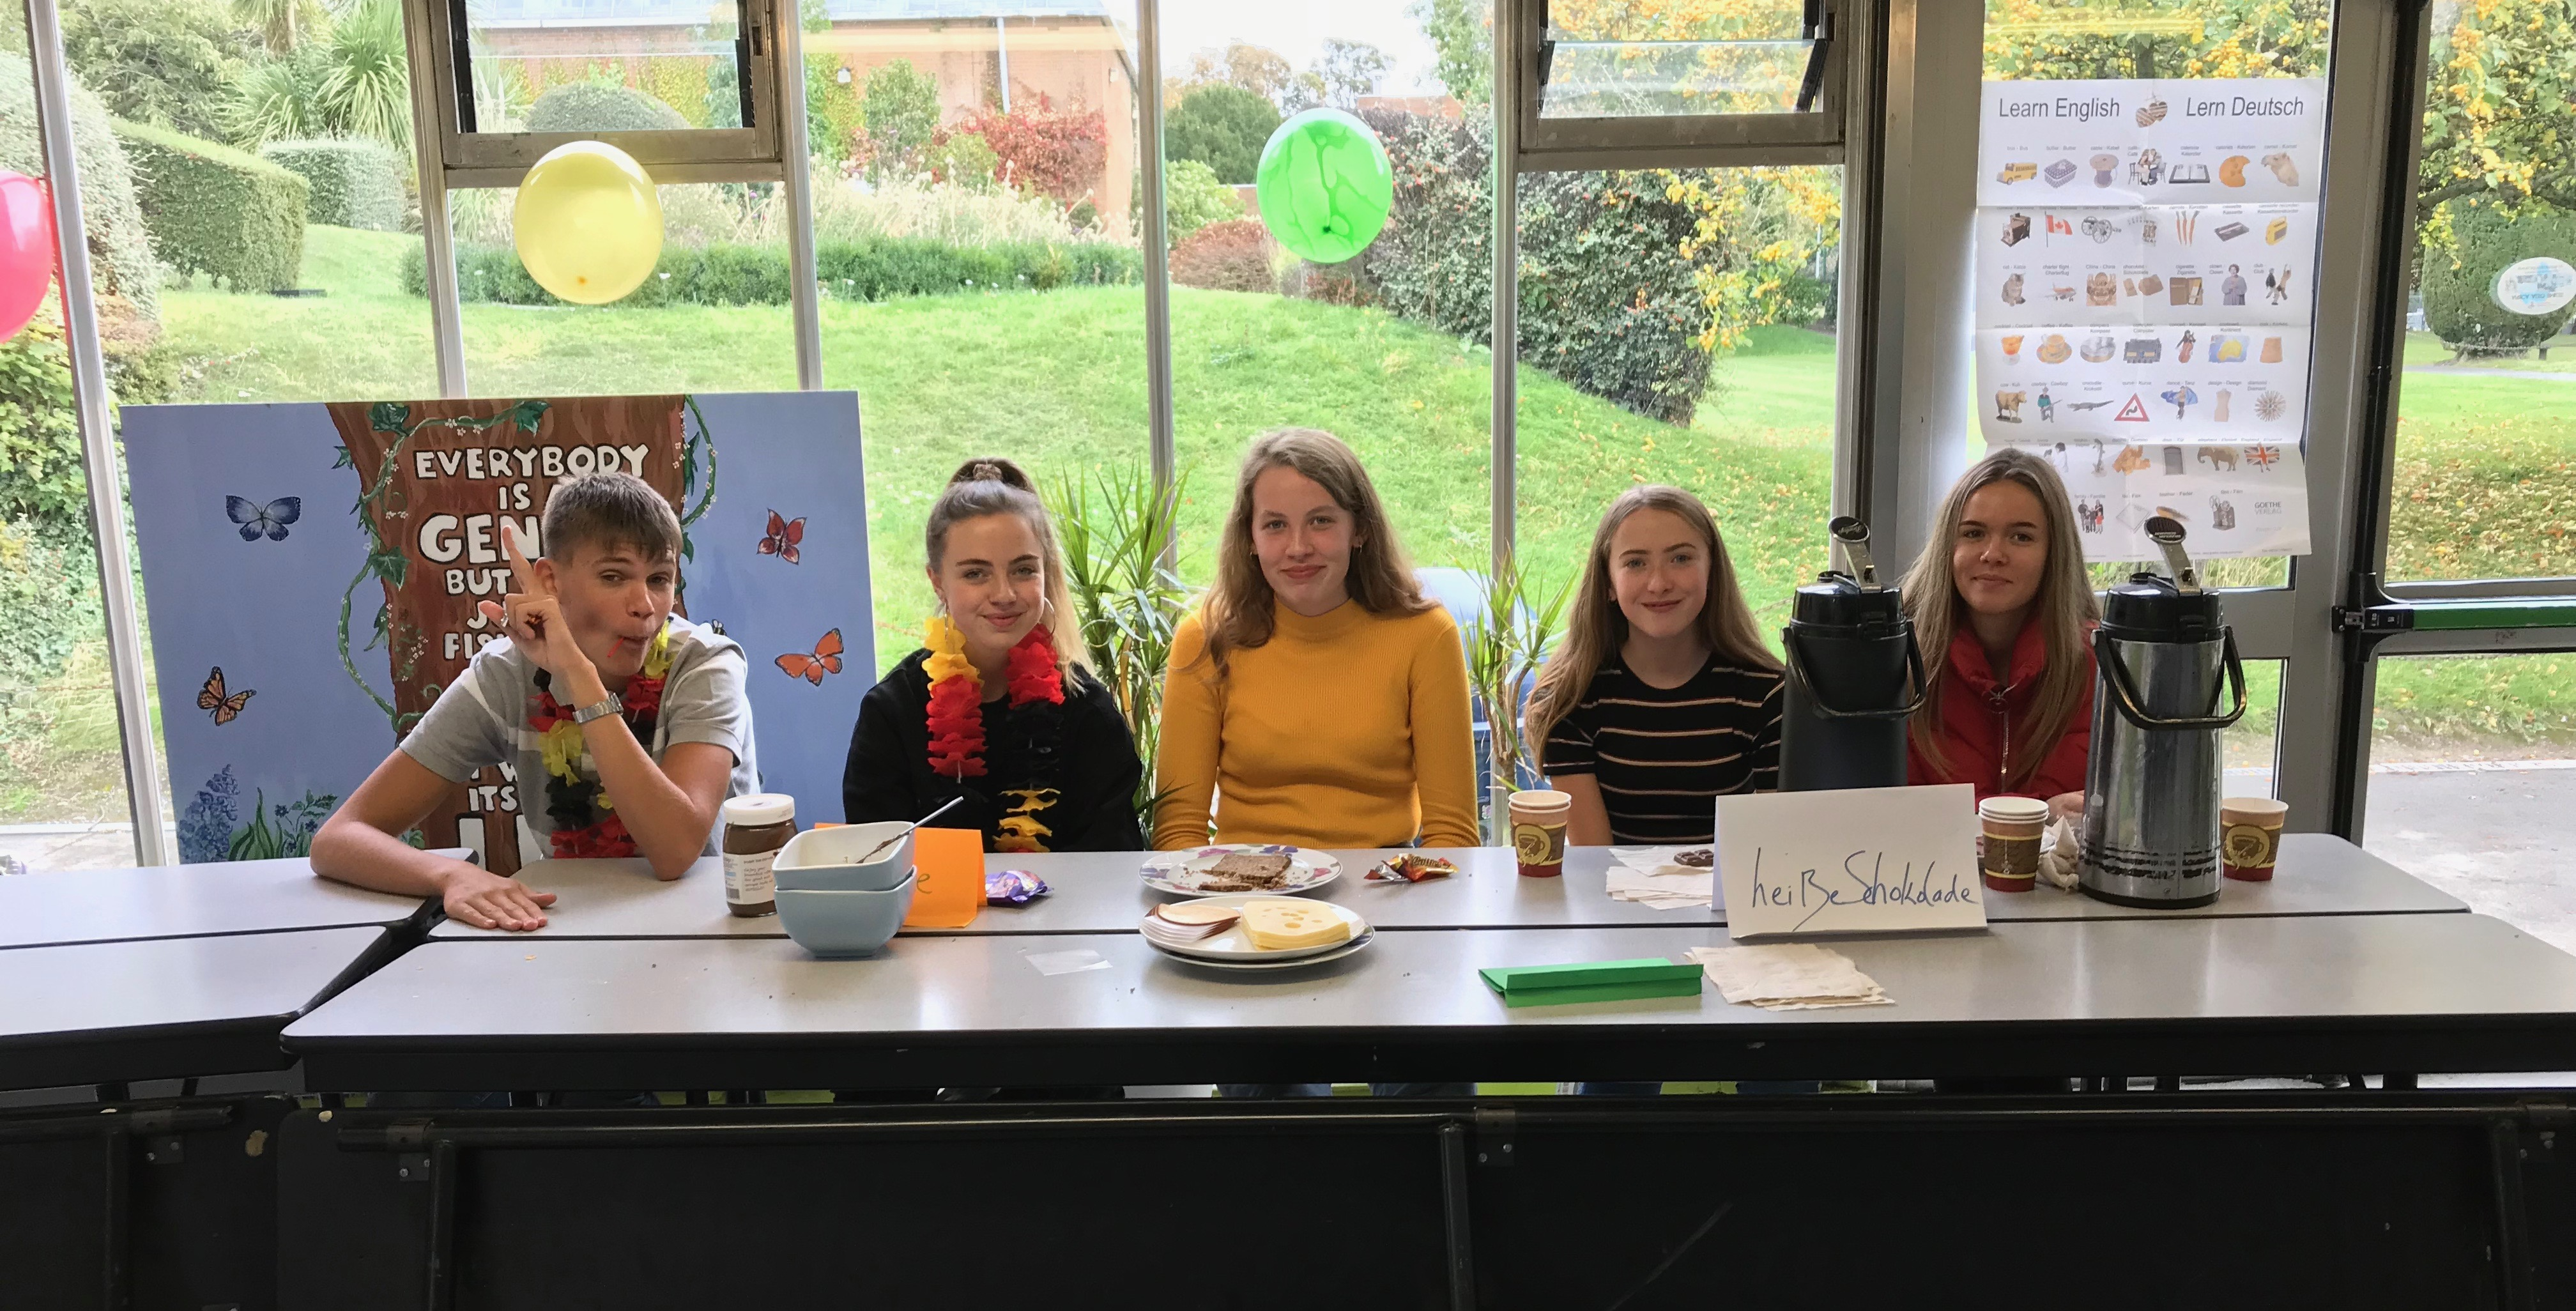 Language week 2018: TY pupils helping out at 1st Year German Fruhstuck (Breakfast) in canteen